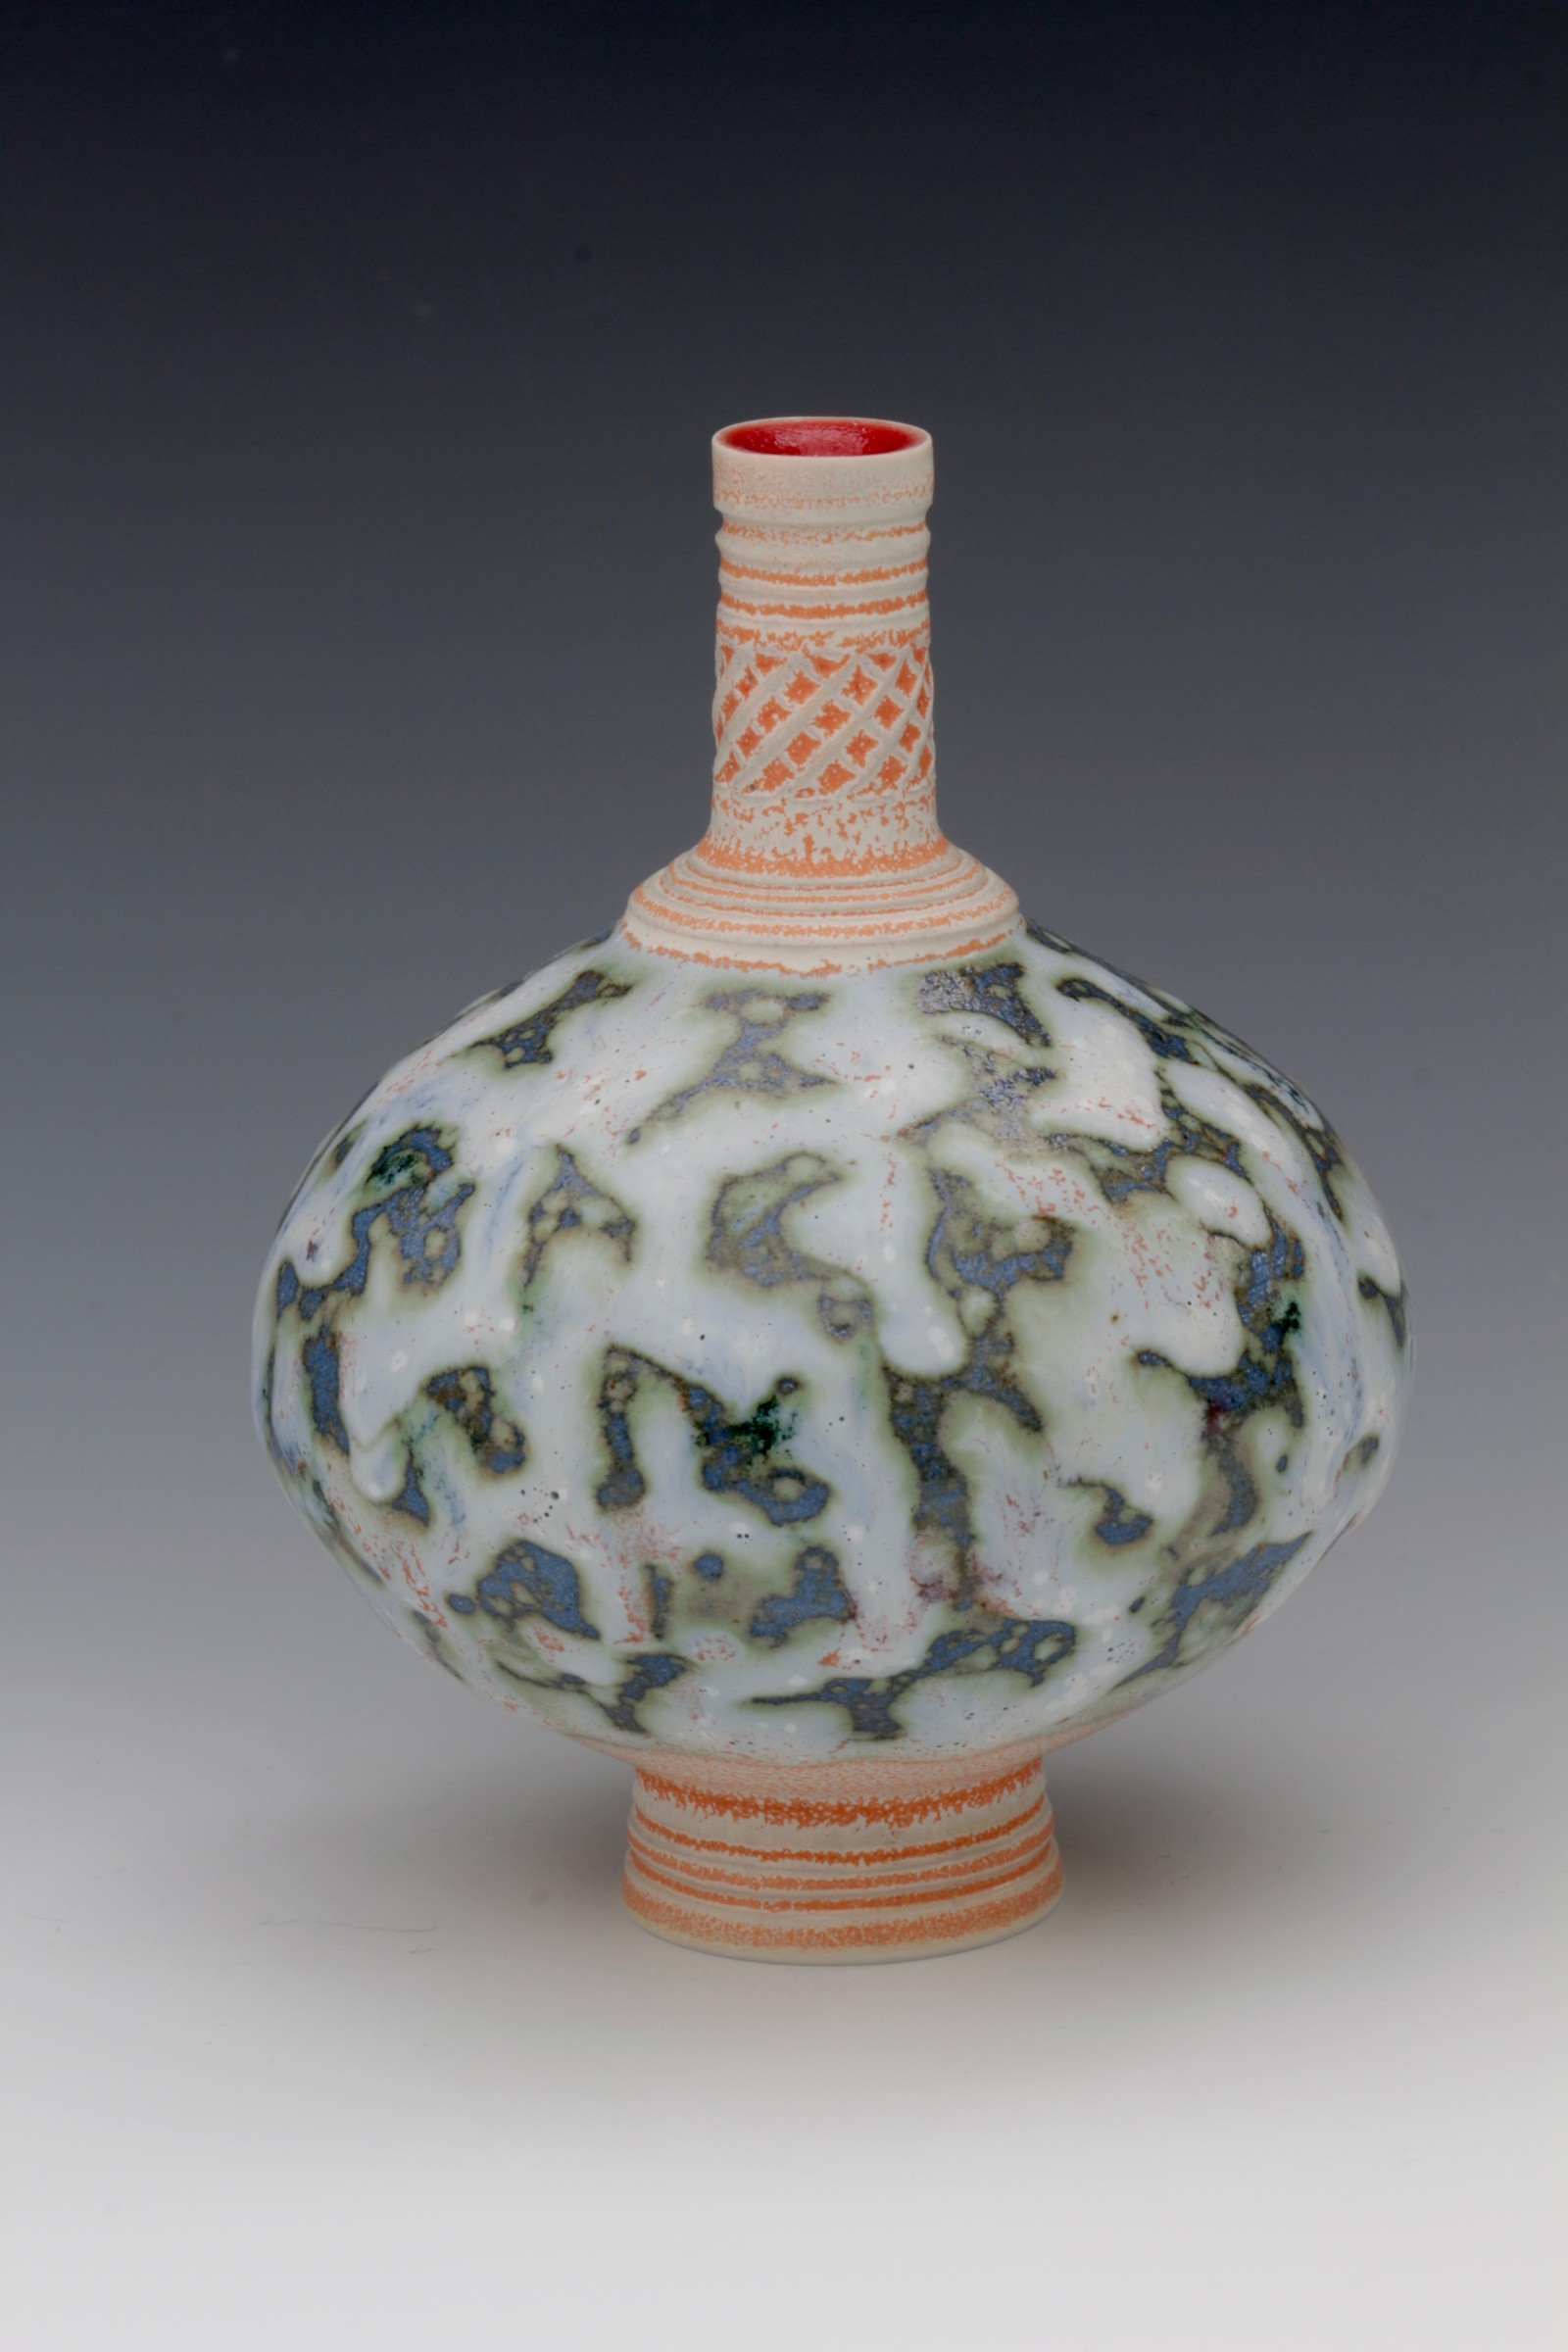 "<span class=""link fancybox-details-link""><a href=""/artists/61-geoffrey-swindell/works/6328-geoffrey-swindell-bud-vase-2019/"">View Detail Page</a></span><div class=""artist""><strong>Geoffrey Swindell</strong></div> <div class=""title""><em>Bud Vase</em>, 2019</div> <div class=""signed_and_dated"">Stamped on the bottom</div> <div class=""medium"">Porcelain</div><div class=""copyright_line"">Own Art: £16 x 10 Months 0% APR</div>"